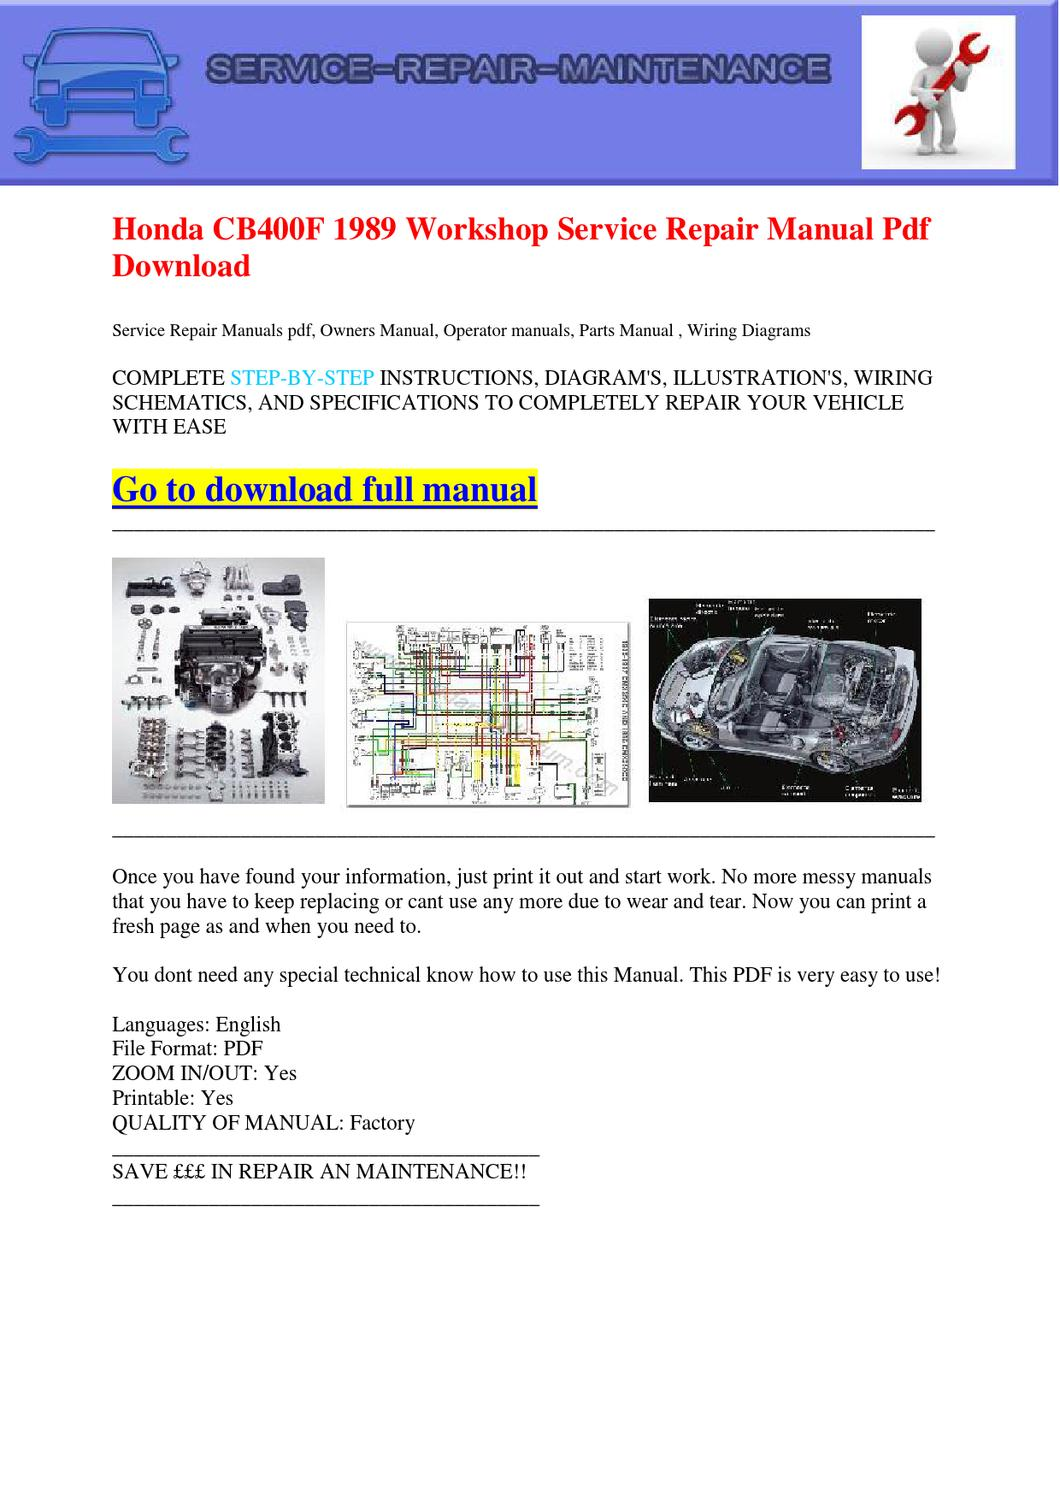 Honda Cb400f 1989 Workshop Service Repair Manual Pdf Download By Dernis Castan